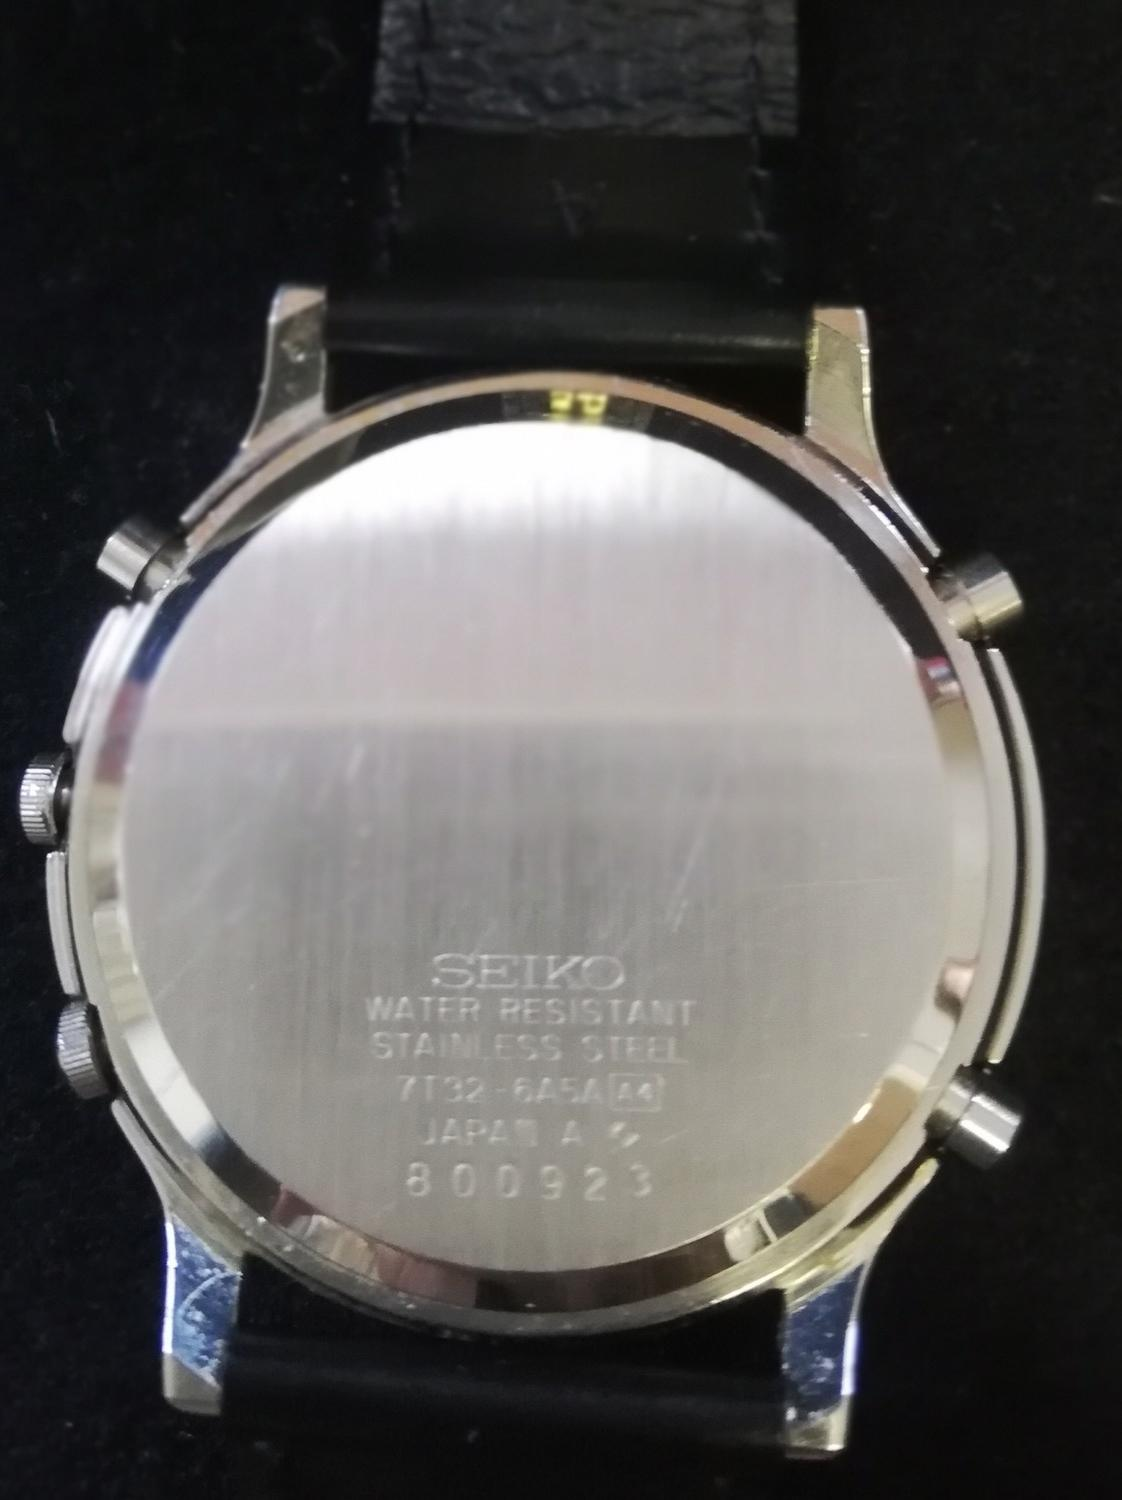 Seiko quatz alarm chronograph watch with papers and booklet 1993 - Image 3 of 3